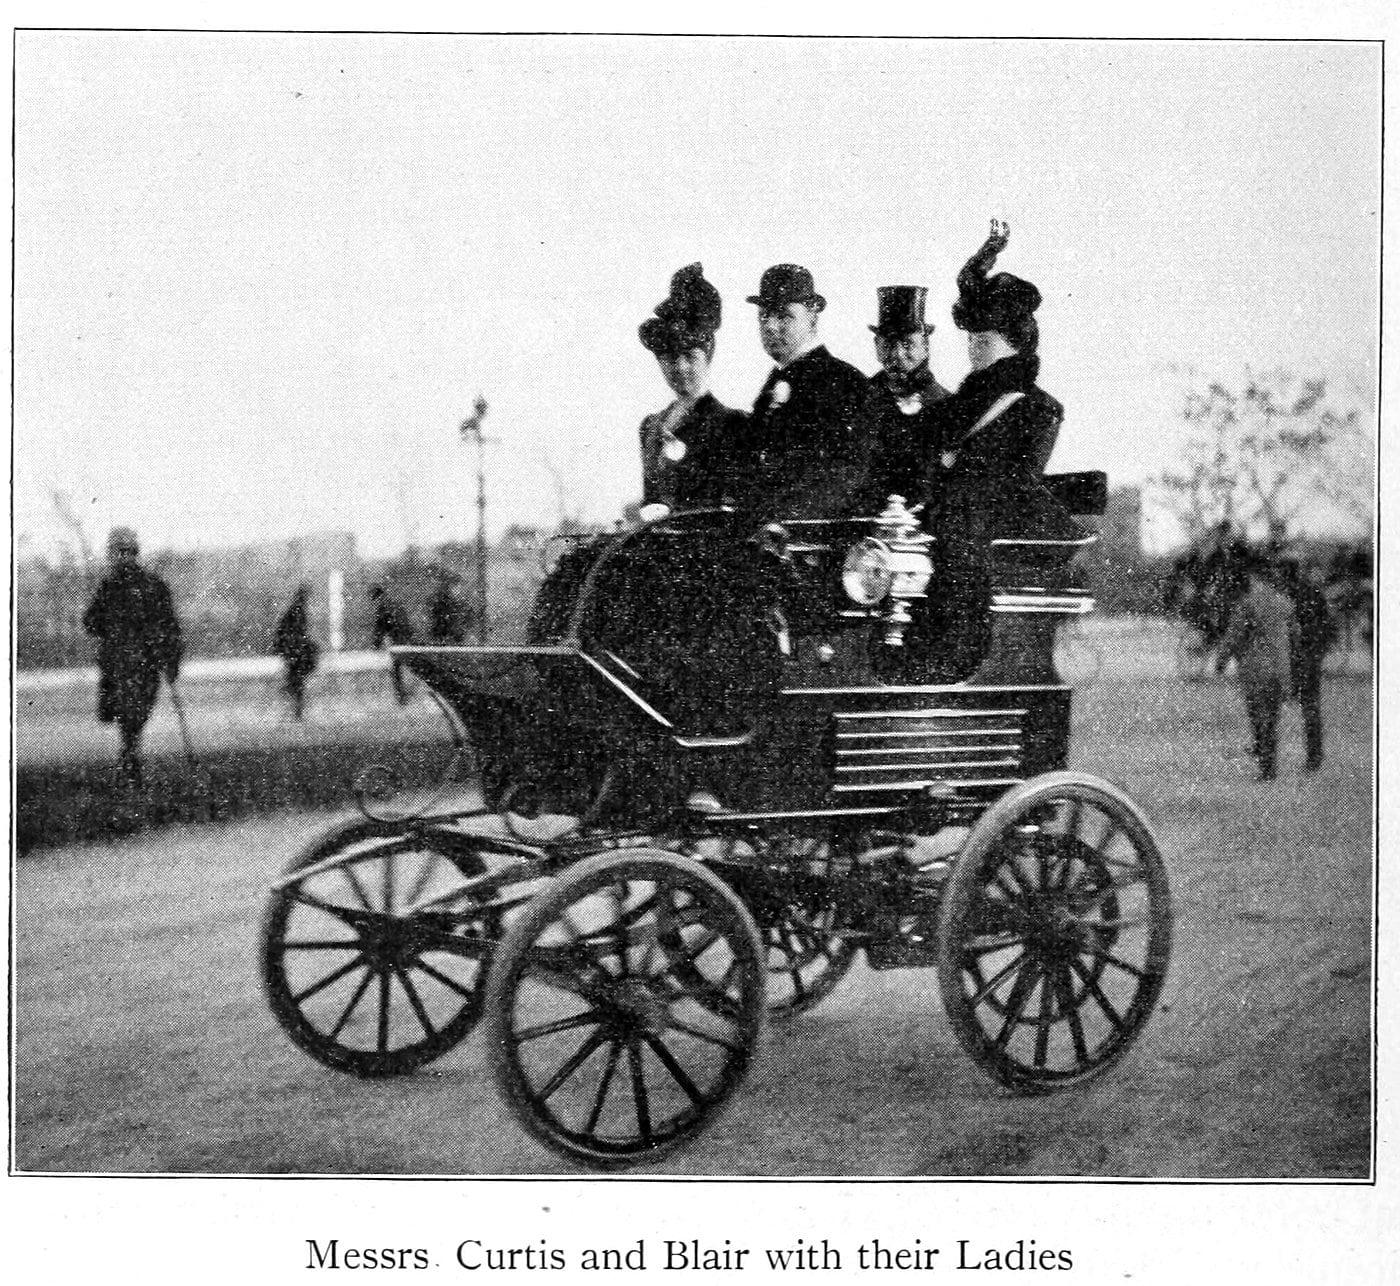 Messrs. Curtis and Blair with their ladies (1899)